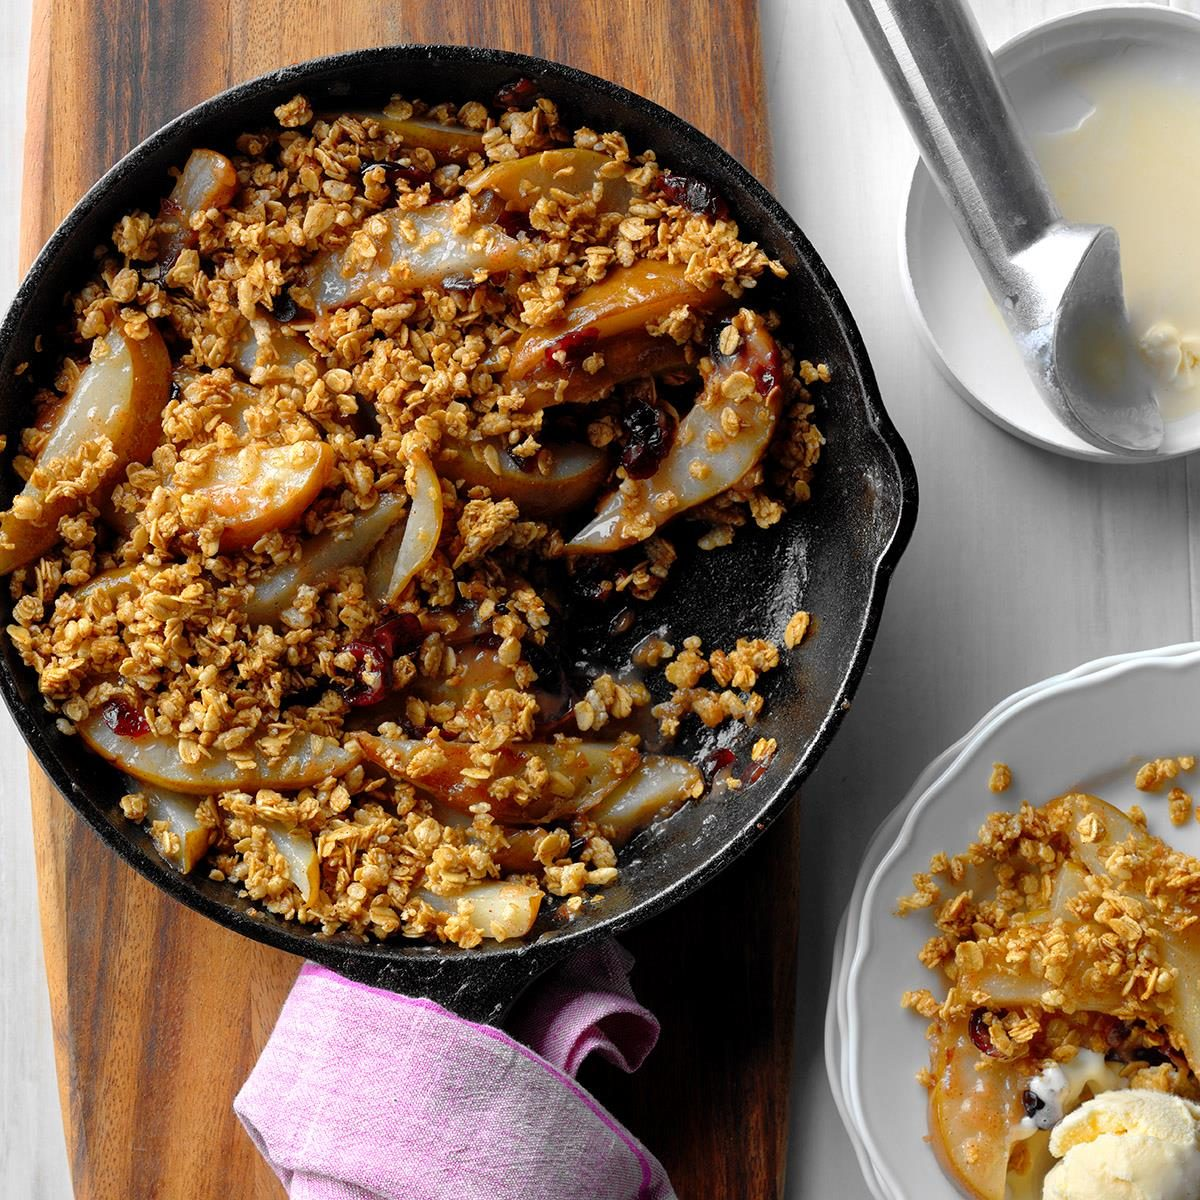 Peer Crumble Our Absolute Favorite Pear Desserts Taste Of Home